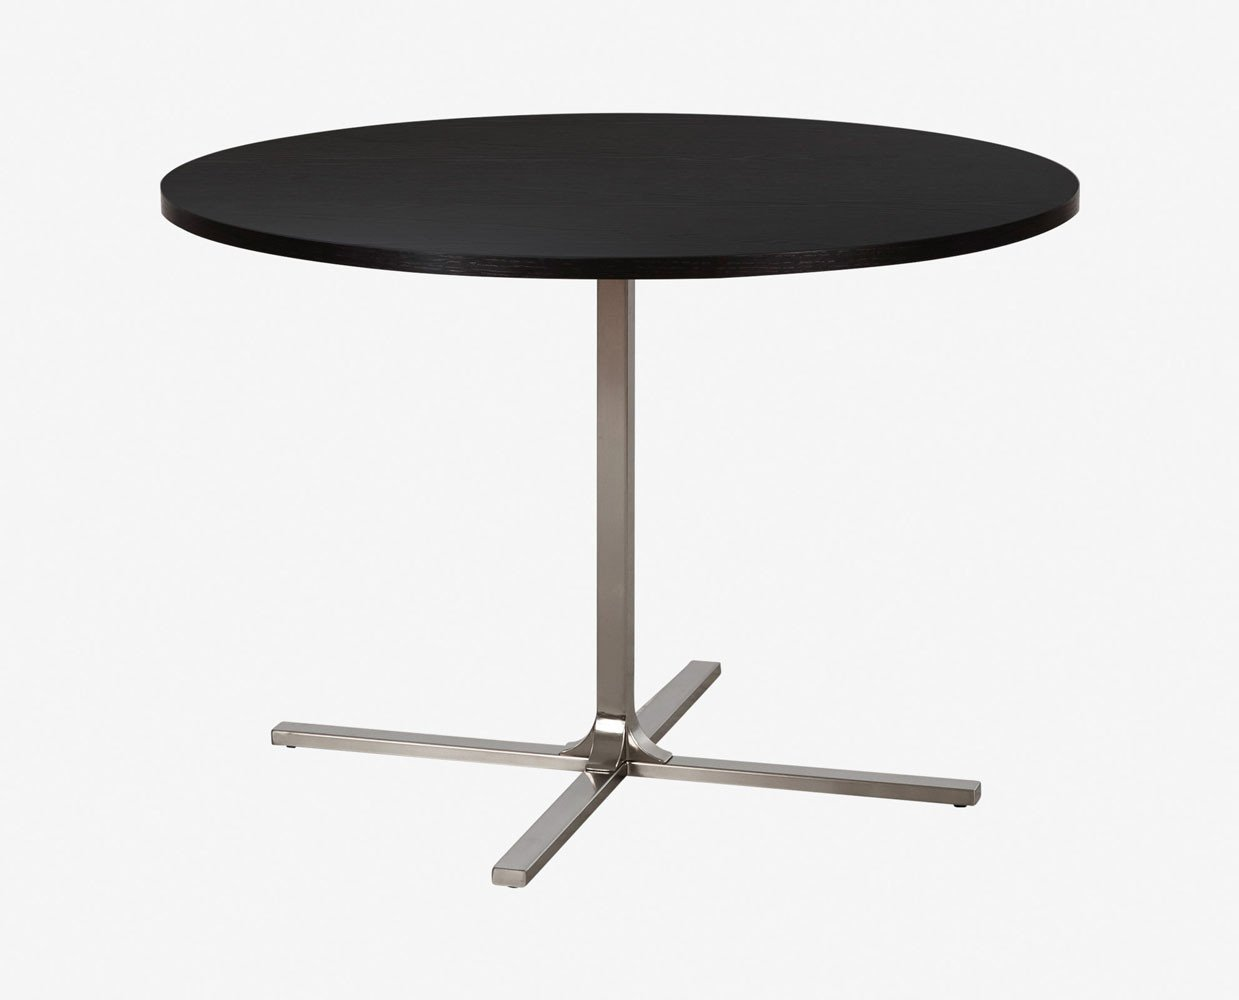 Contemporary nordic style black round dining table